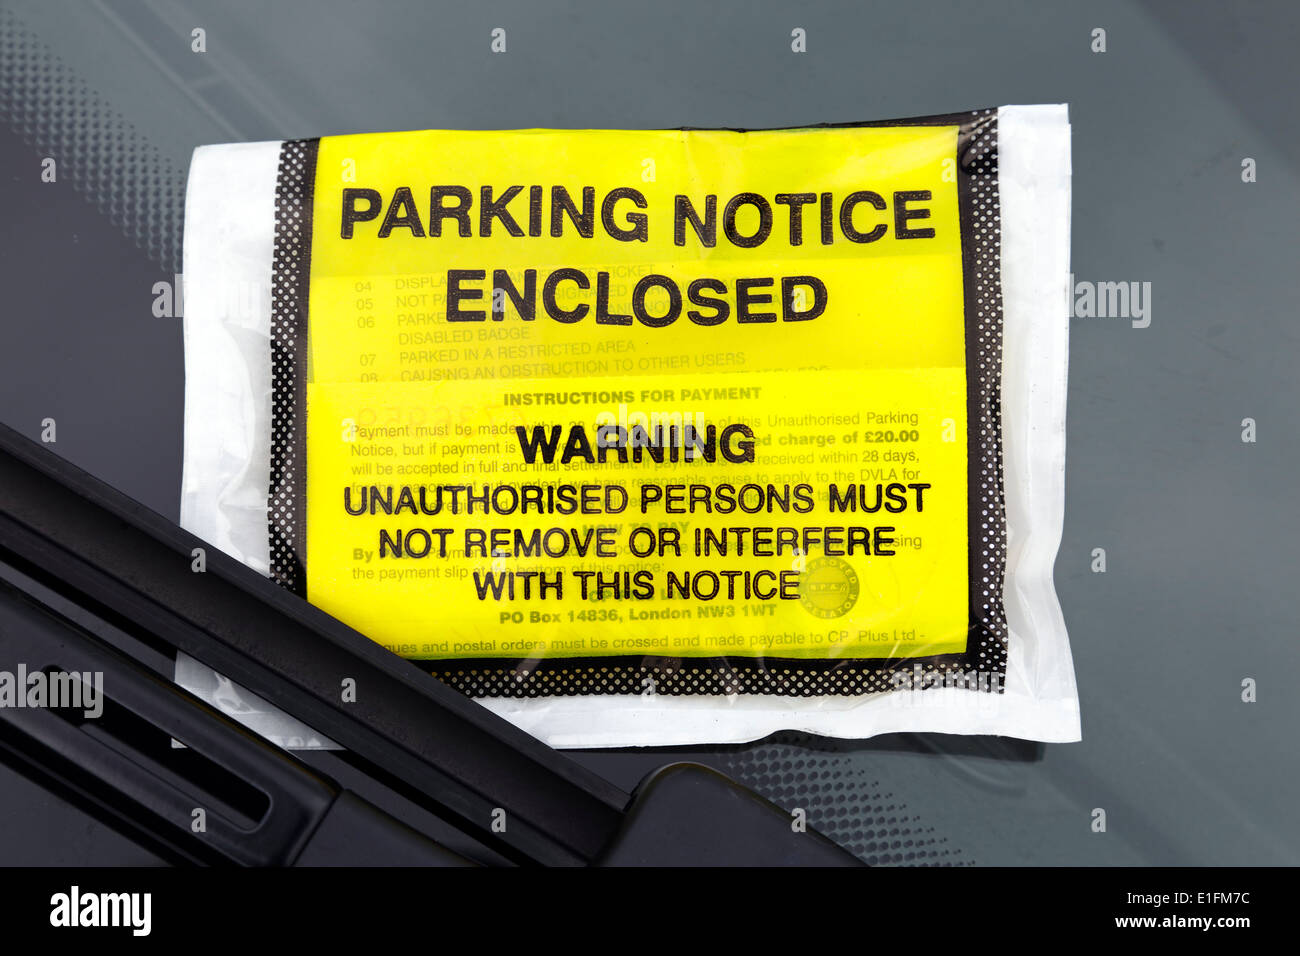 A parking ticket issued in a hospital car park, Scotland, UK - Stock Image